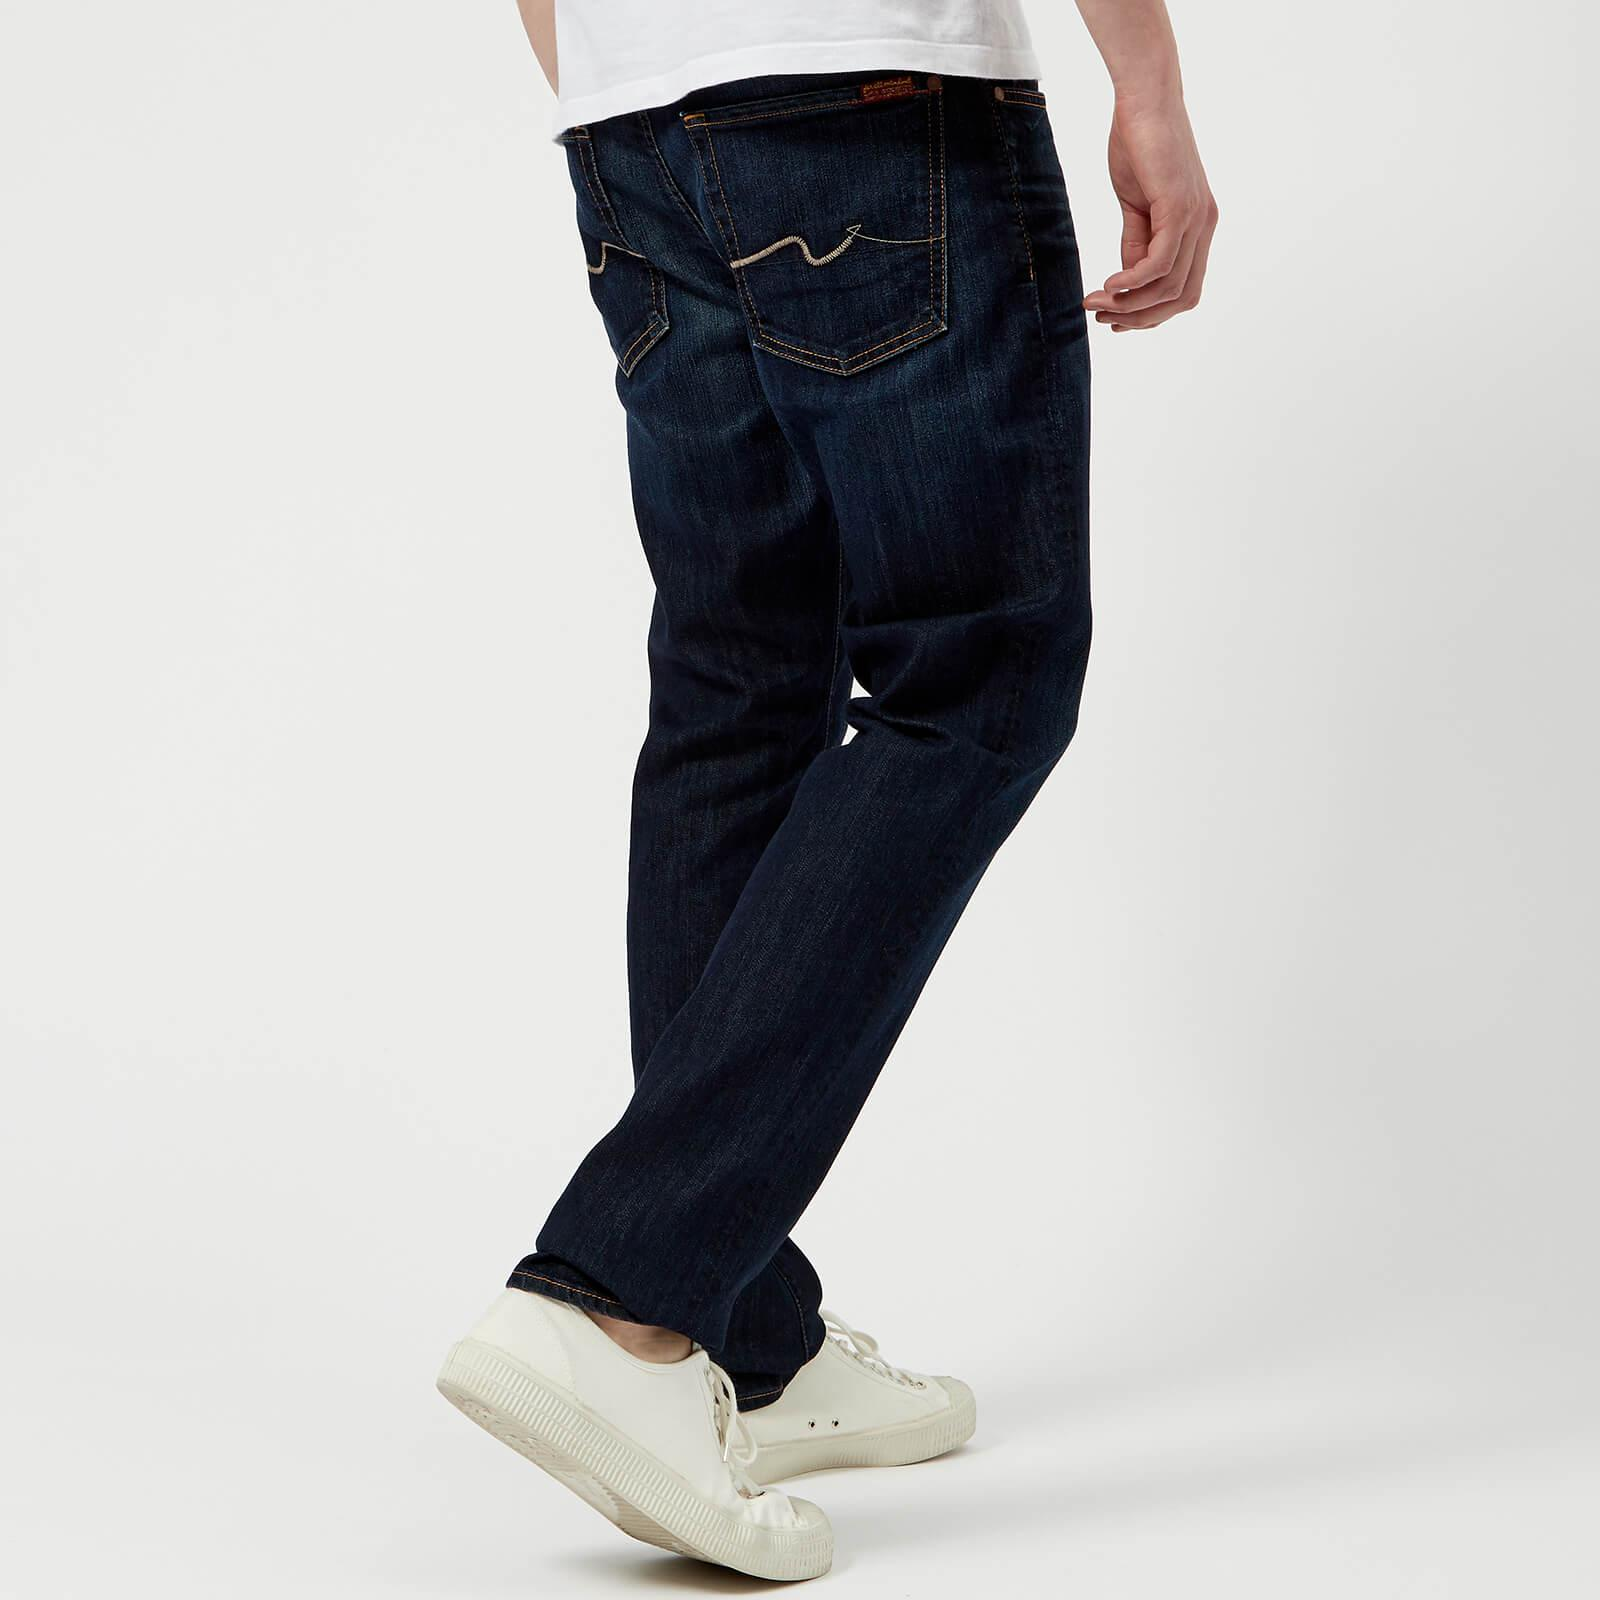 7 For All Mankind Slimmy Airweft Denim Jeans in Blue for Men